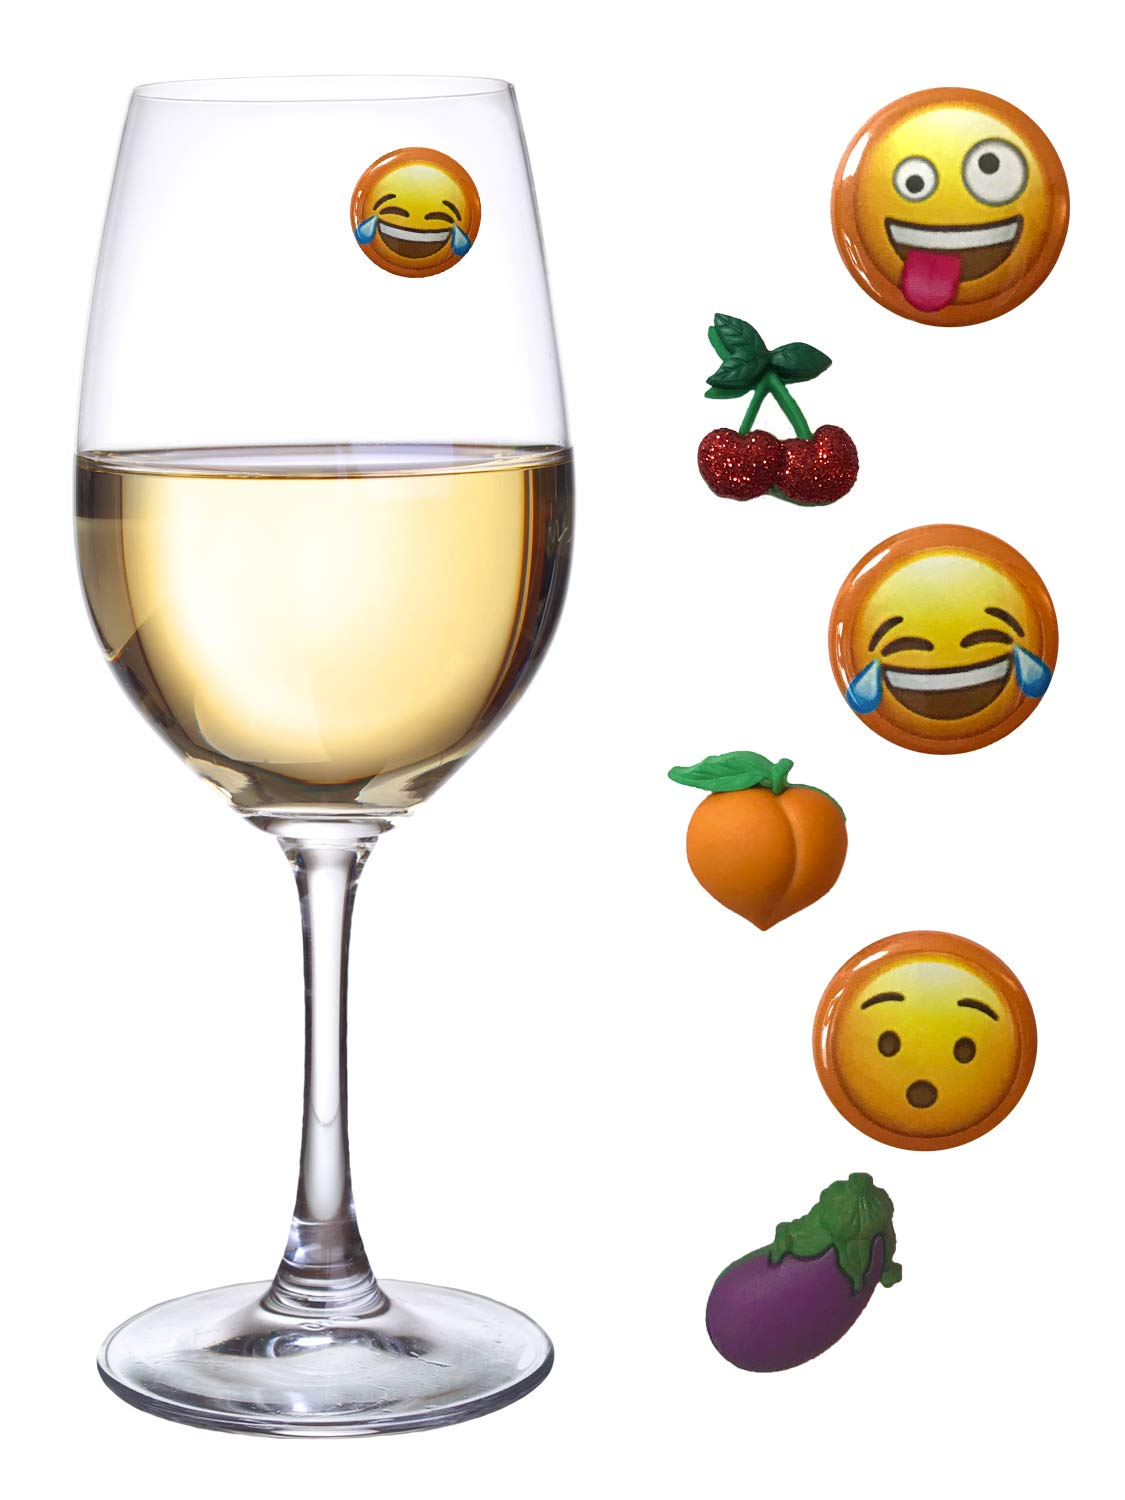 Emoji Wine Charms Set of 6 Glass Markers or Tags by Simply Charmed New Addition with Eggplant Peach and Cherries